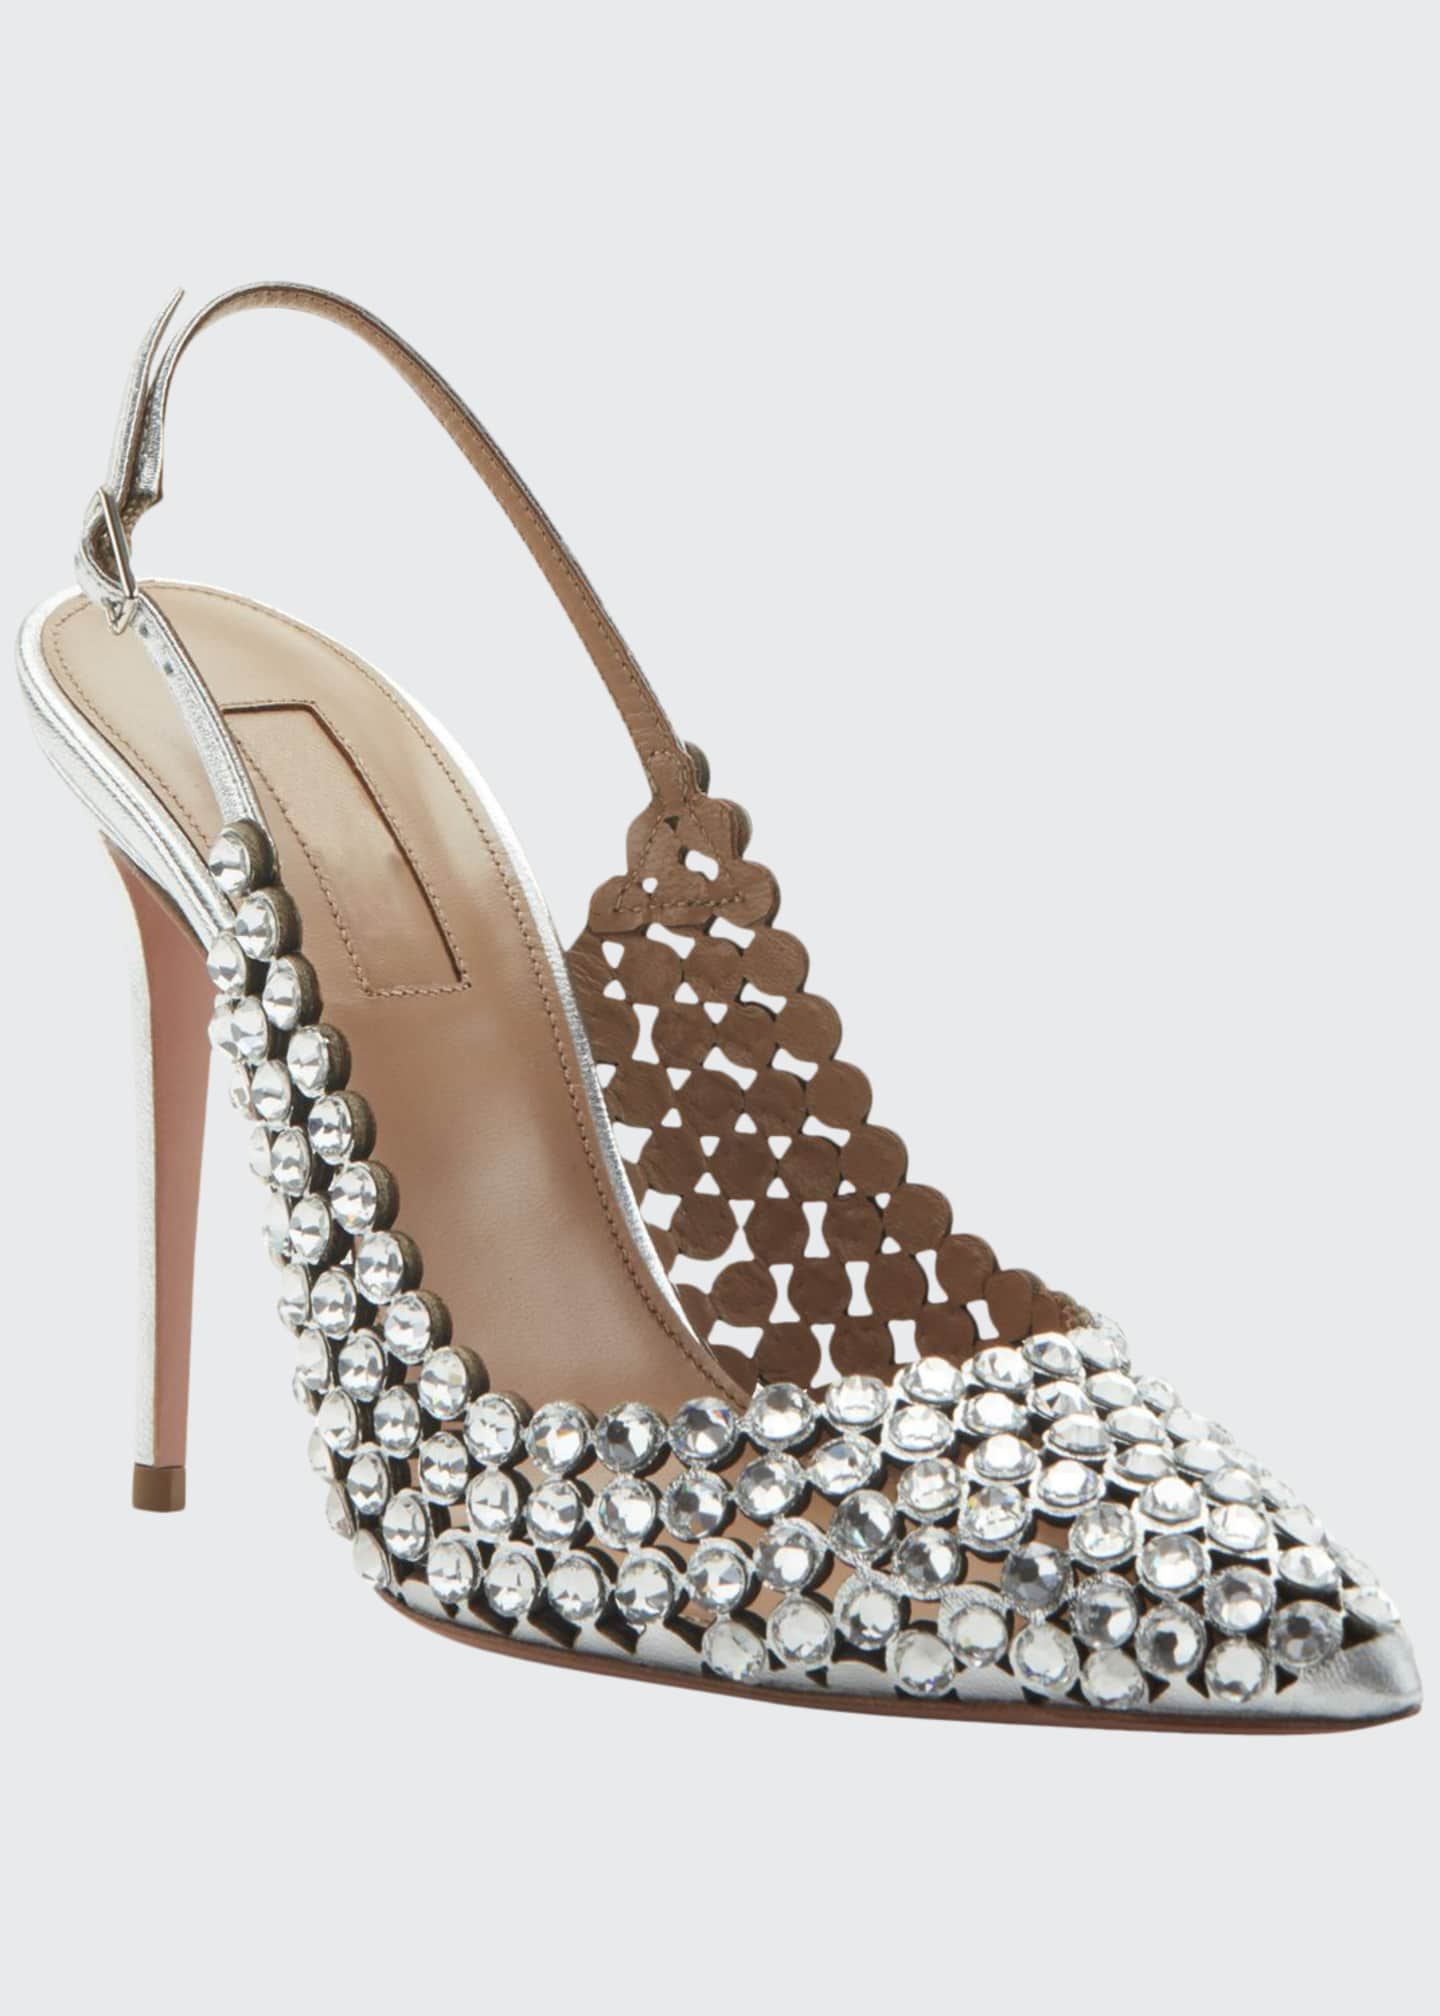 Aquazzura Tequila Jeweled Slingback Pumps